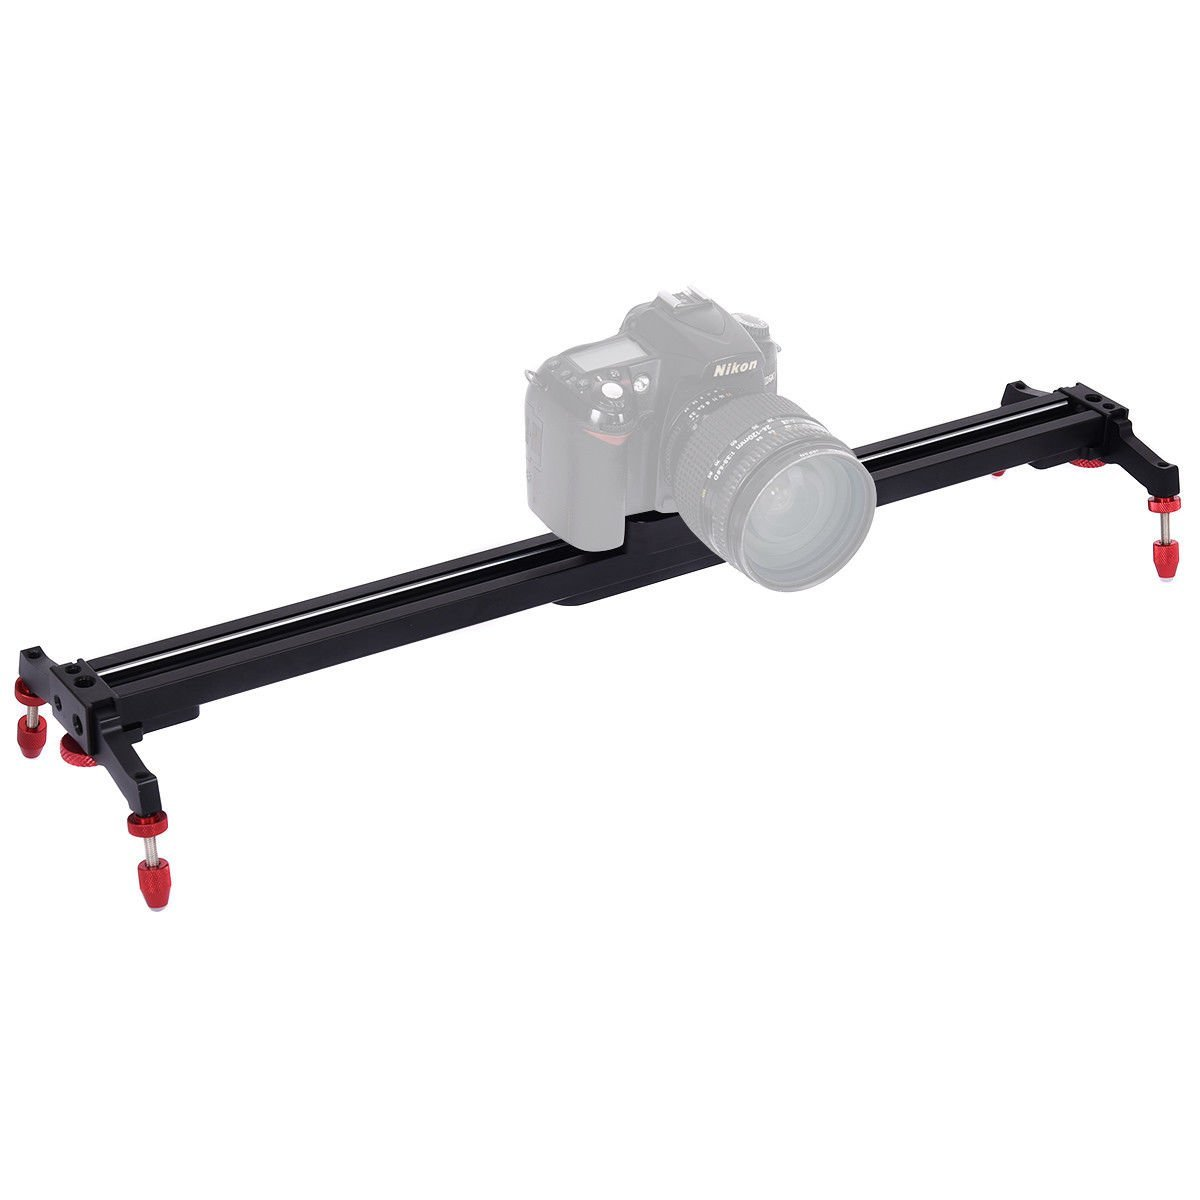 """Safstar 32""""Aluminum Alloy Camera Track Slider Video Stabilizer Rail with 4 Ball-Bearings for DSLR Camera DV Video Camcorder Film Photography"""